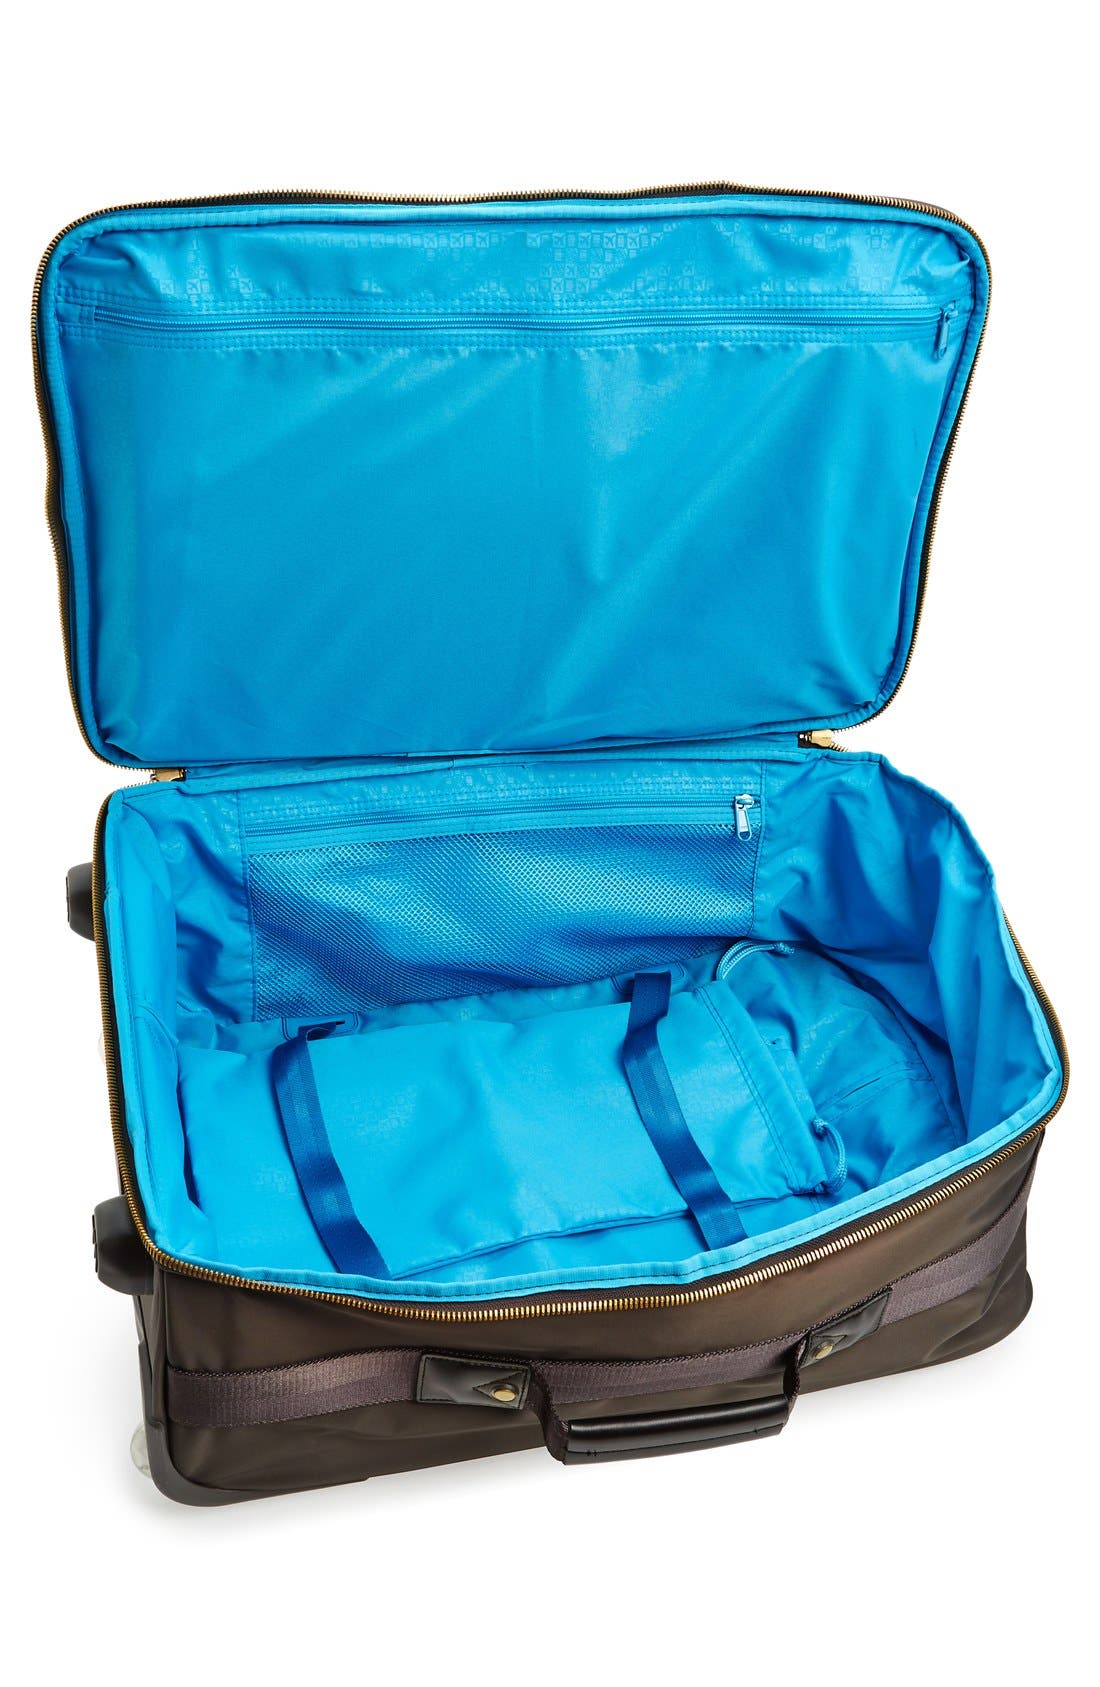 Avionette 22-Inch Rolling Carry-On Suitcase,                             Alternate thumbnail 3, color,